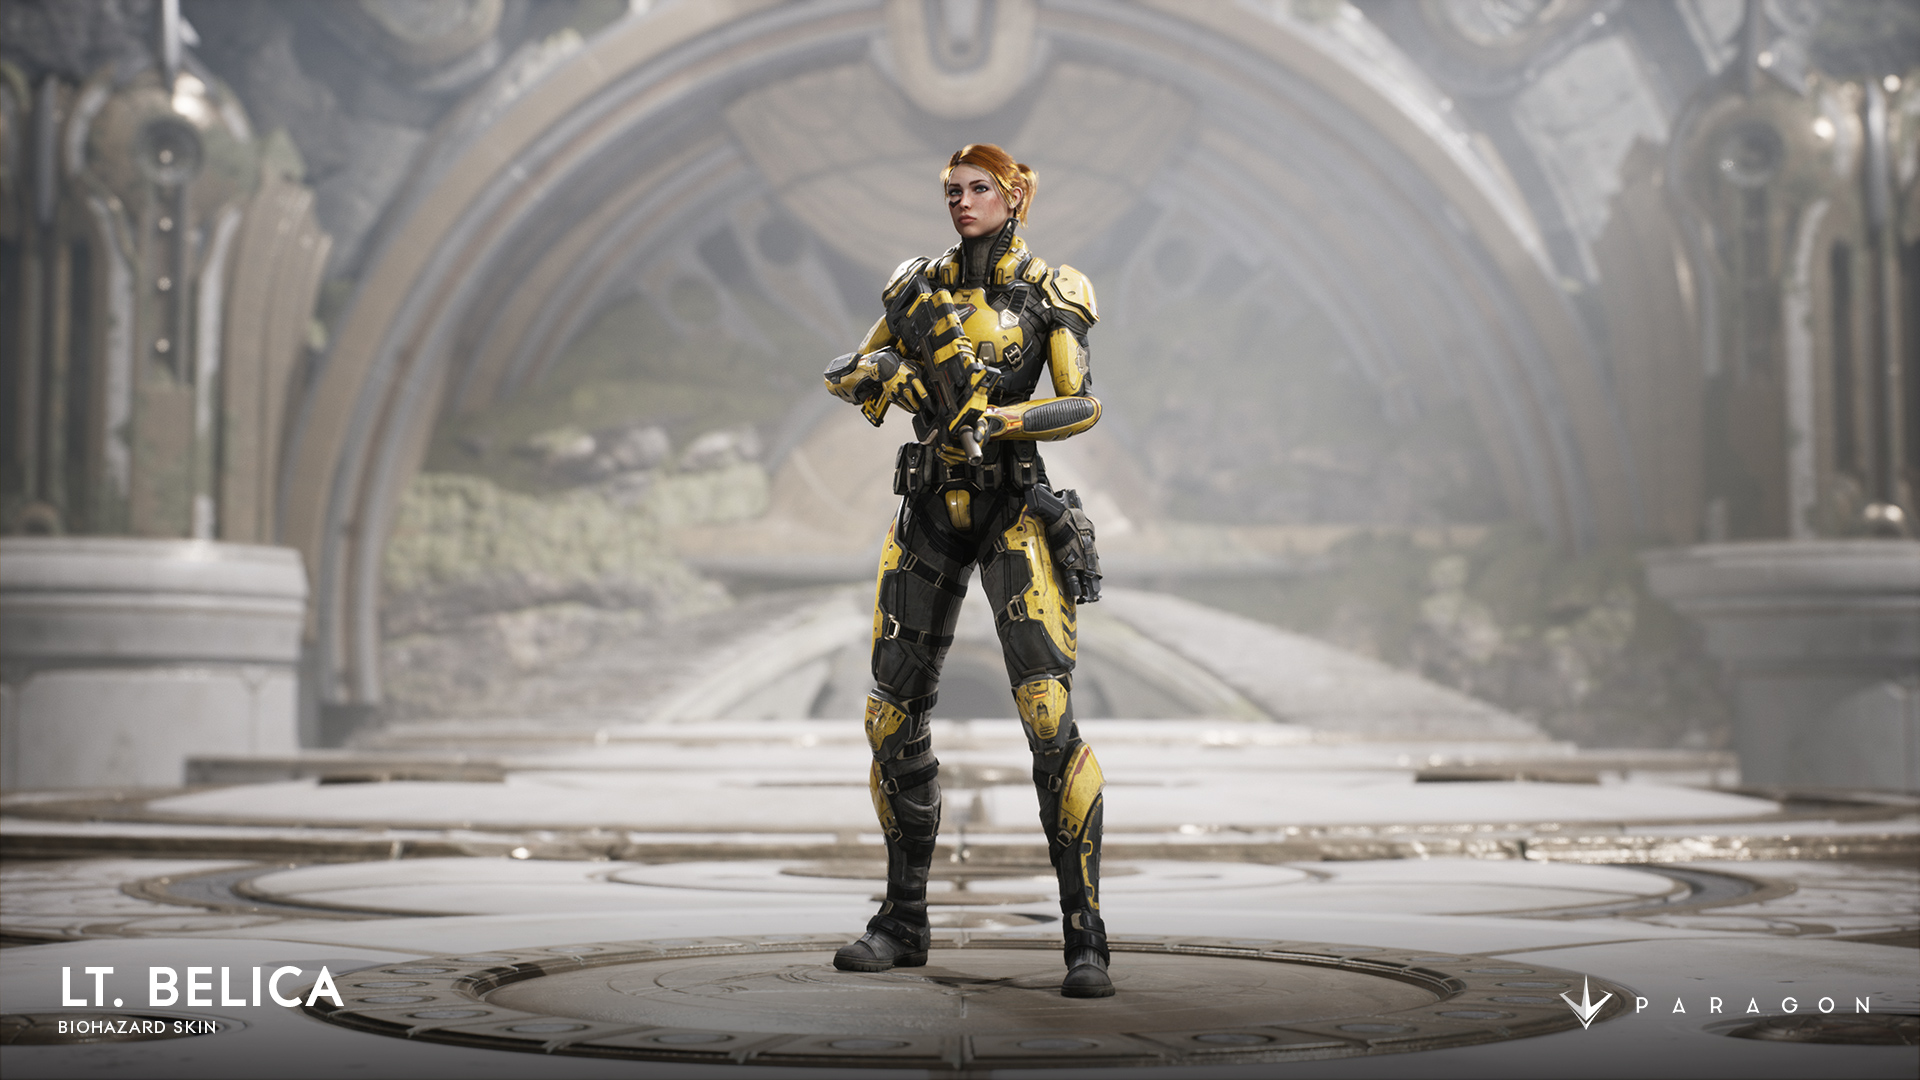 Paragon%2Fblog%2Fv36-2-release-notes%2FBiohazardBelica_Screenshot-1920x1080-b3e3062cfa48460bce453c05b6d692a78f836279